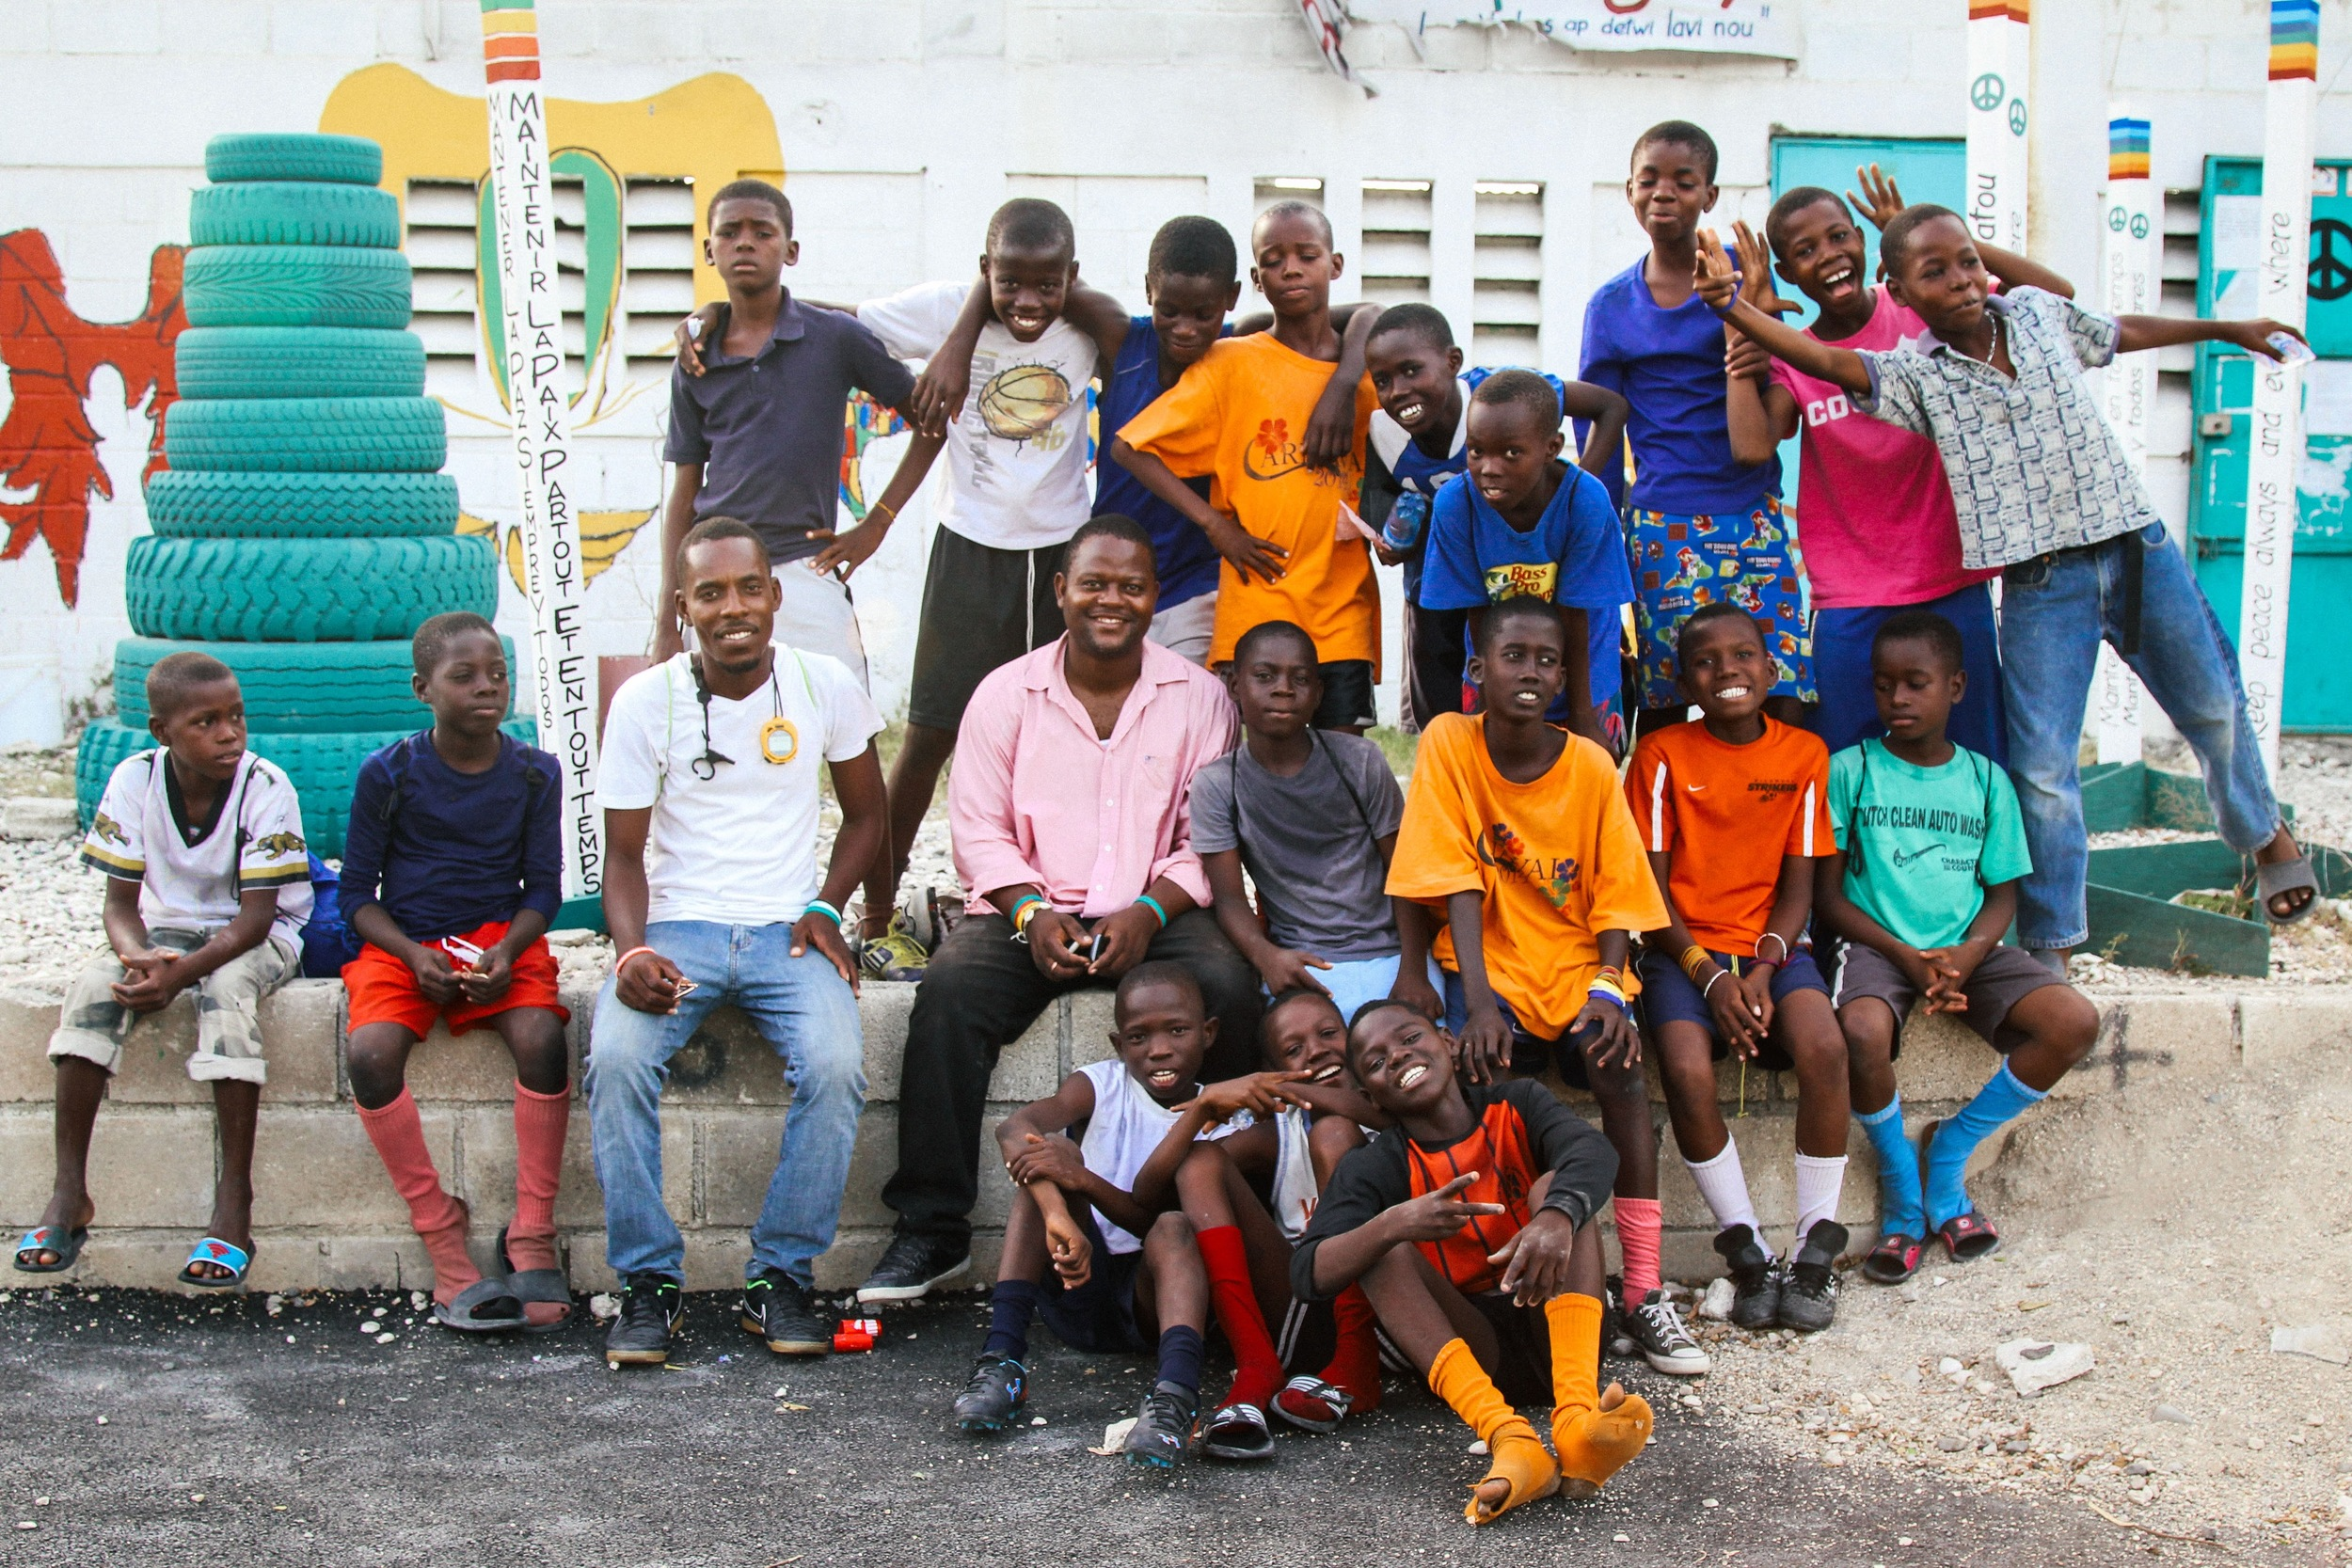 Both teams pose at the end of practice with Coach Fils-Aimé and Felder Jean Paul (at center), one of the members of SAKALA's leadership.